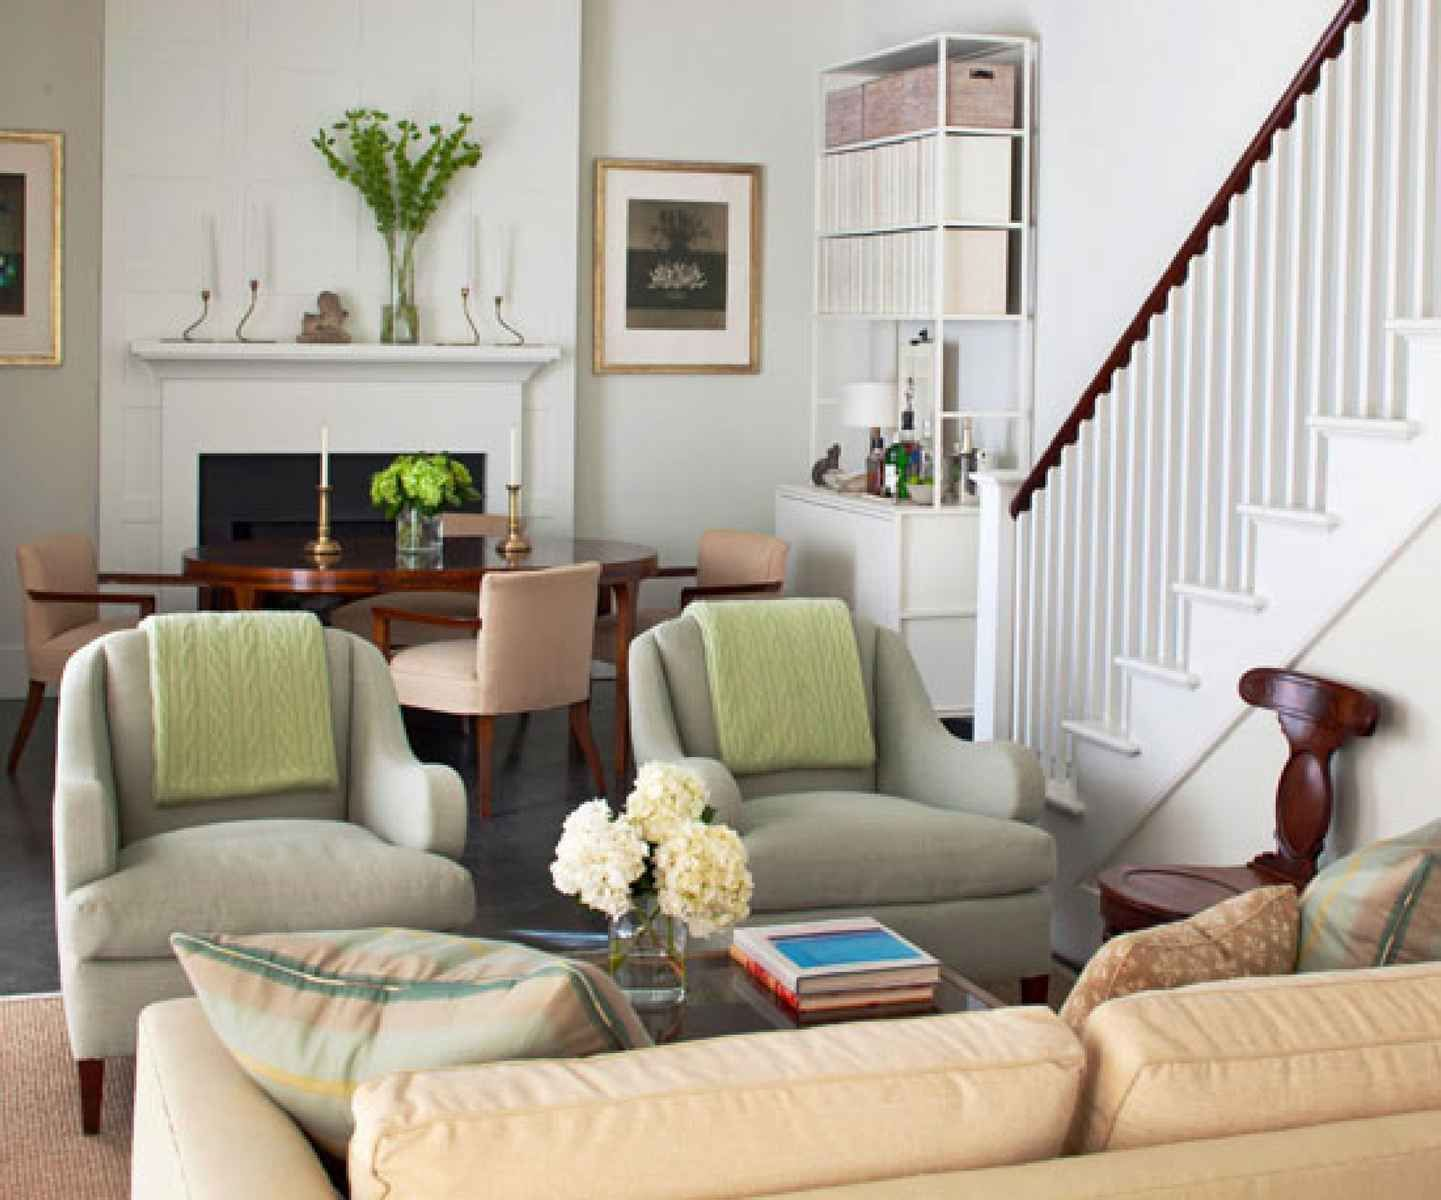 Small Scale Furniture For Living Room Modern Interior Paint Colors Check More At Http